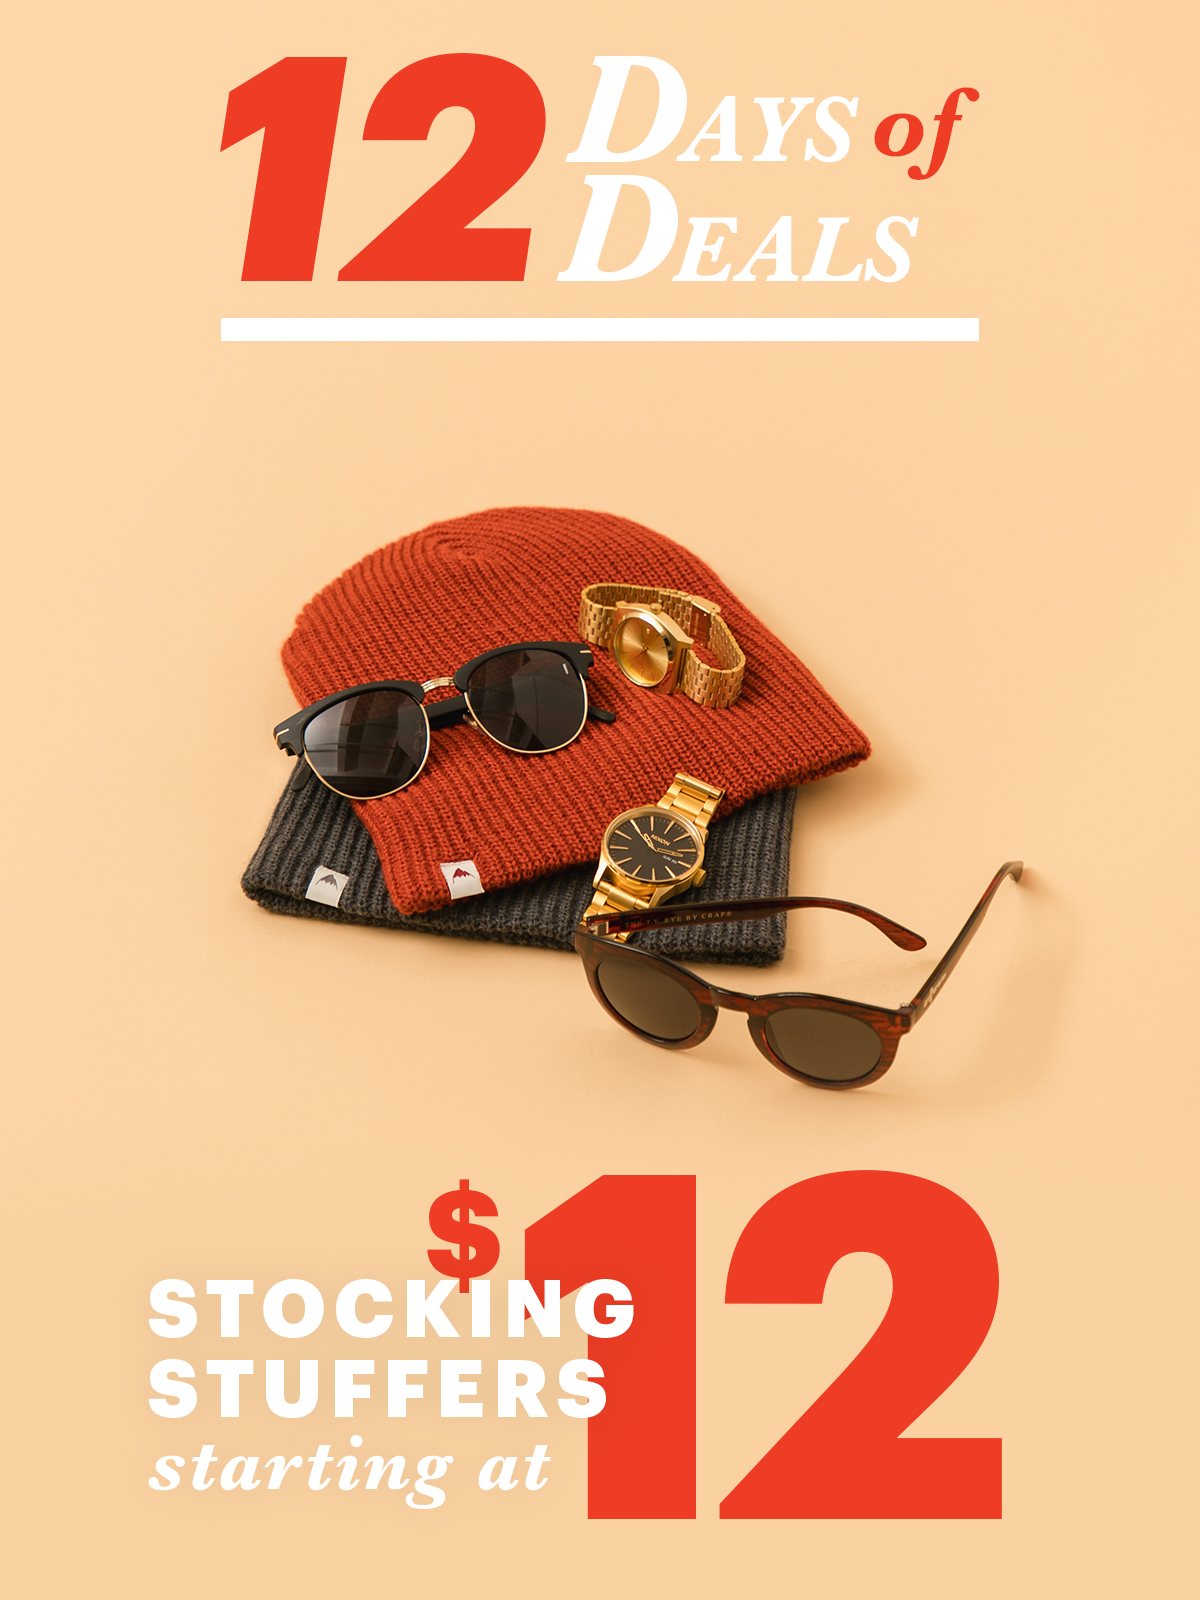 12 Days Of Deals: Day 2 Boots Starting at $74.99